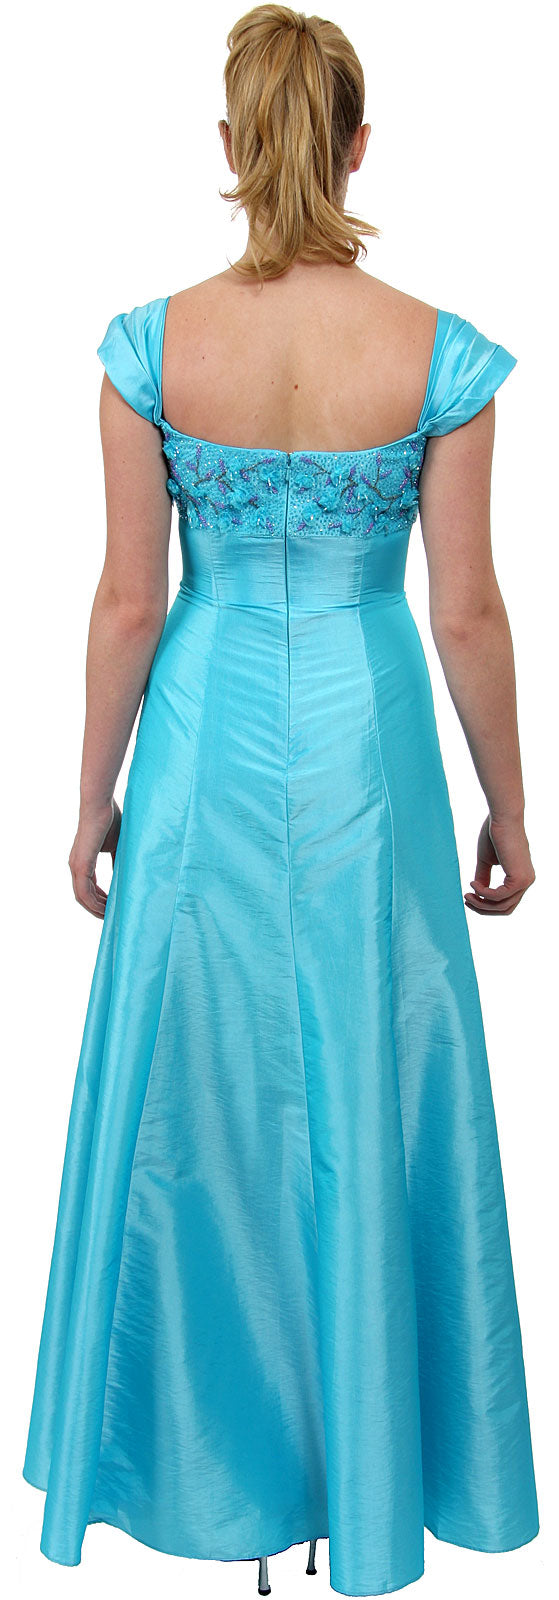 Back image of A Line Cap-sleeved Beaded Prom Dress